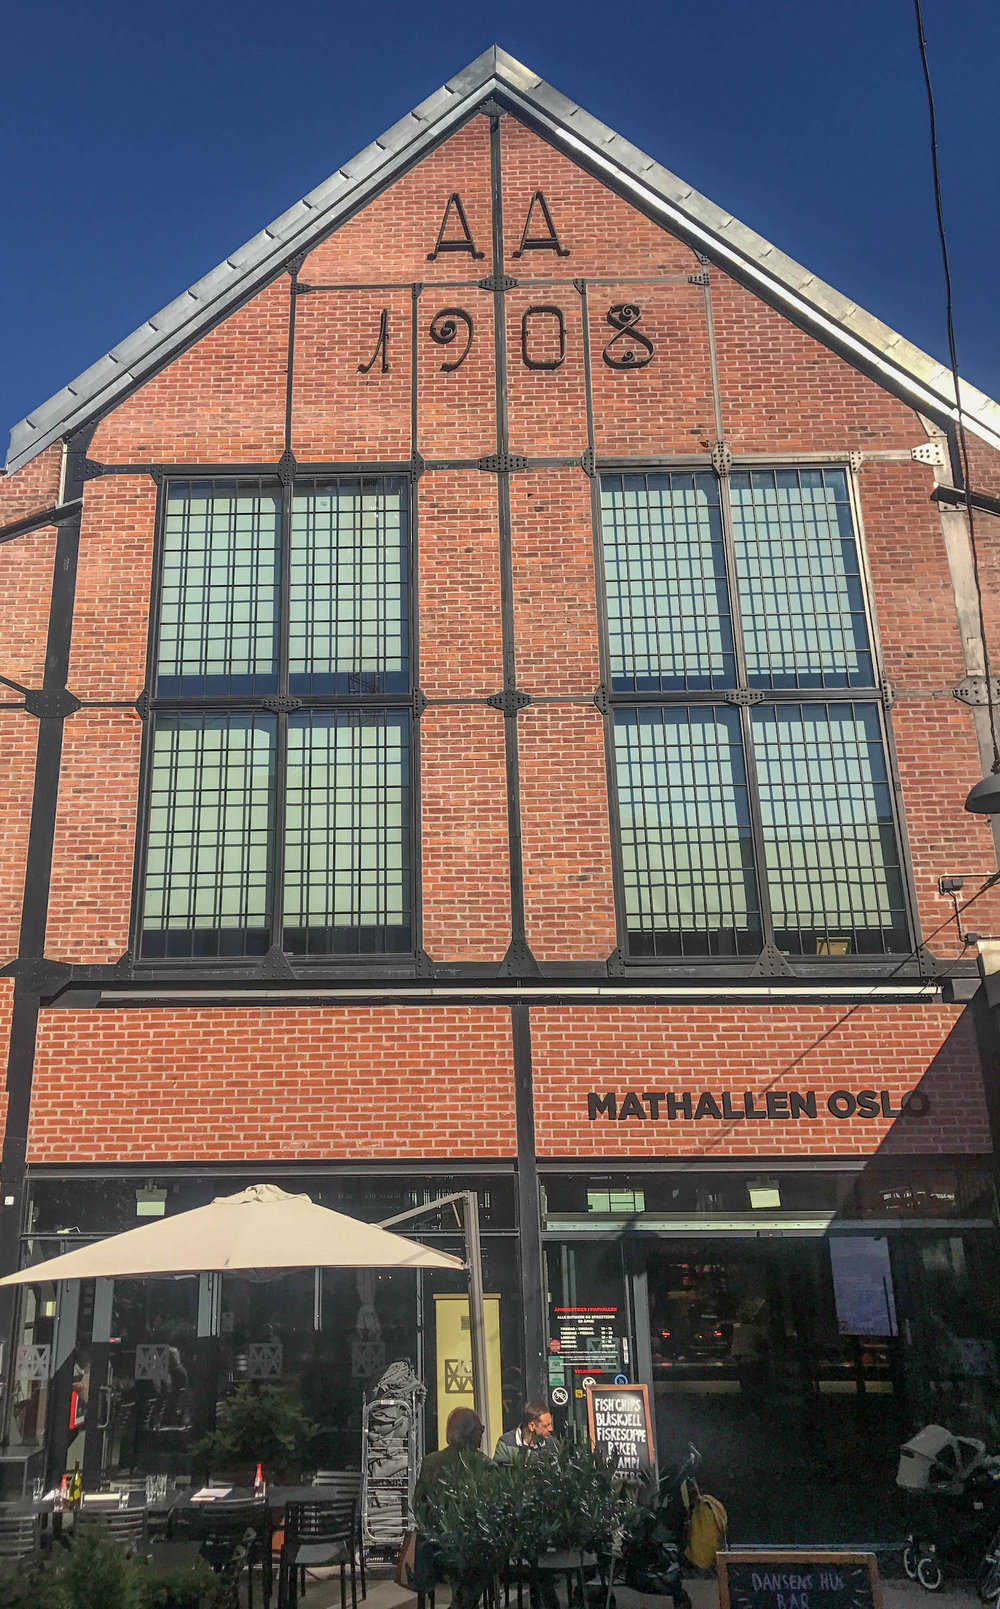 Mathallen Food Hall Exterior (1 of 1).jpg